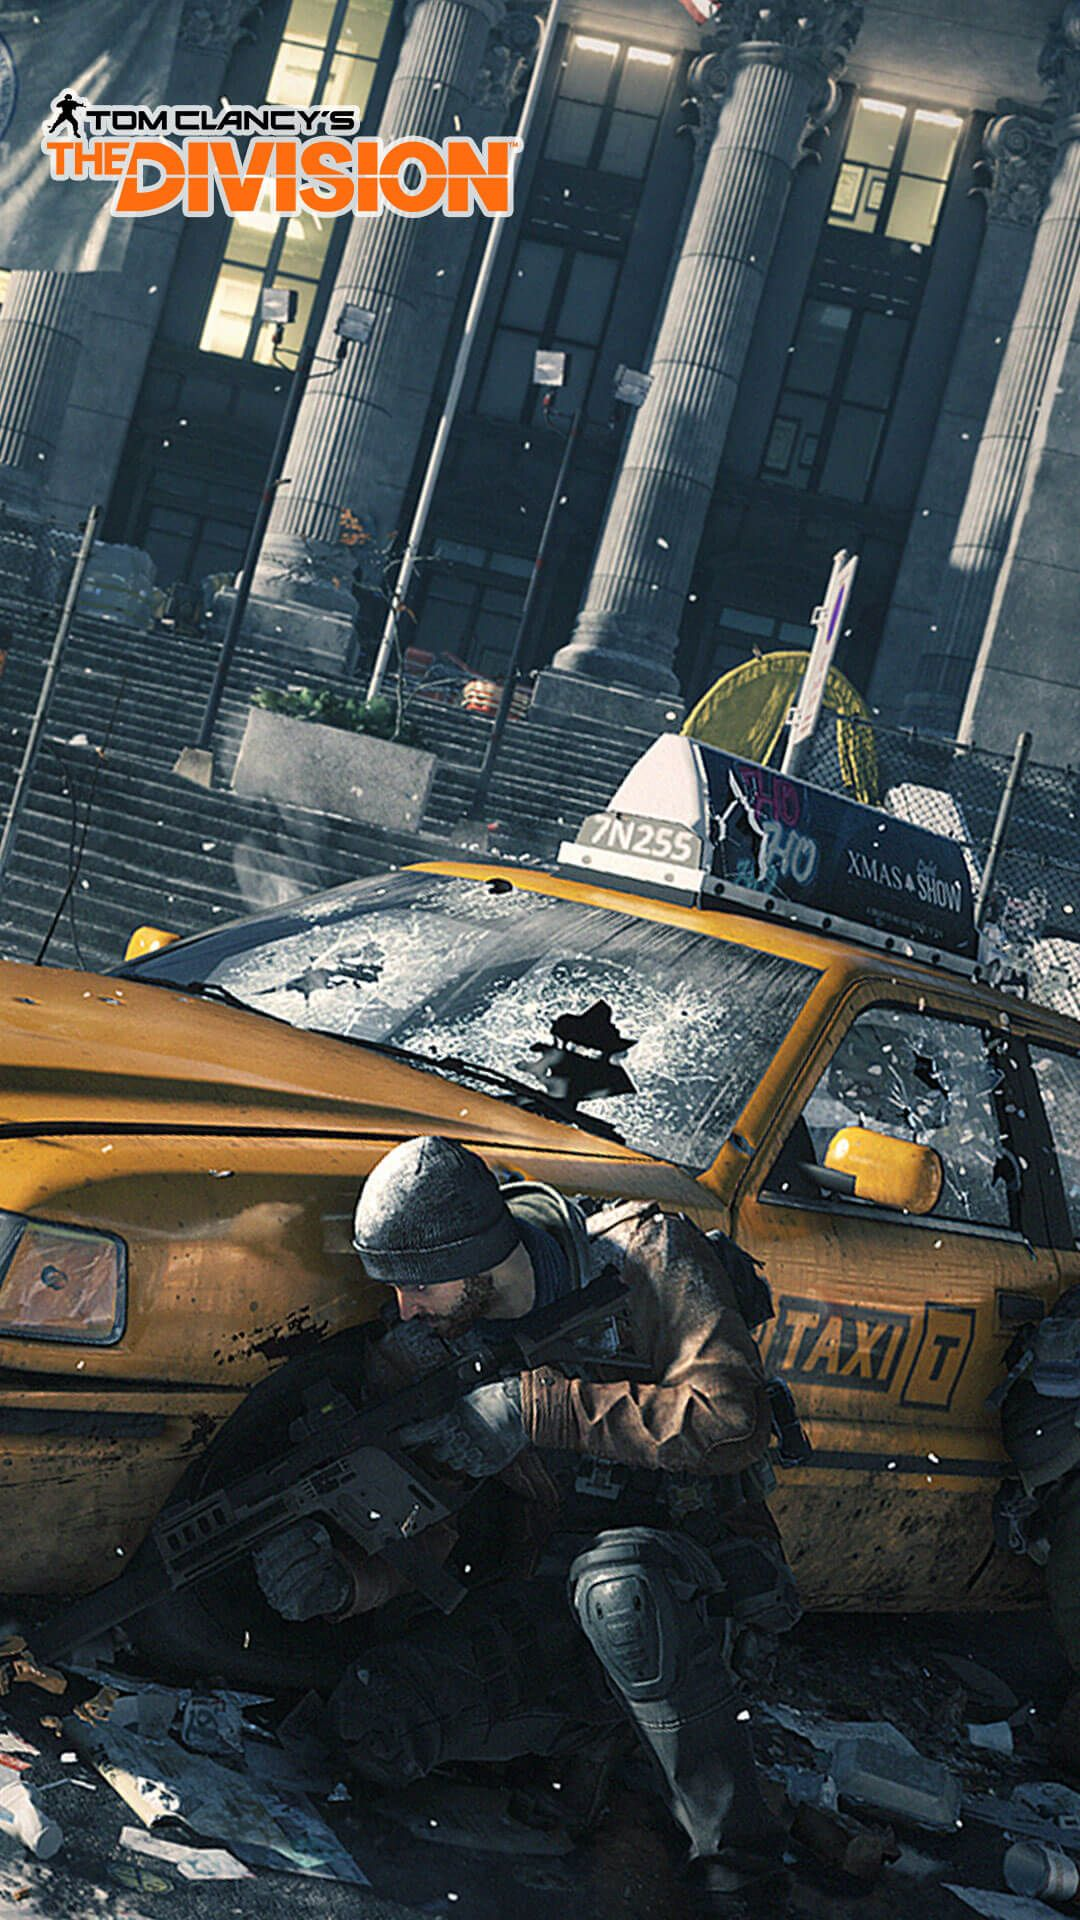 Wallpaper iphone 6 xbox - The Division Iphone 6 Wallpaper Hd Games Wallpaper For Iphone Pinterest Division